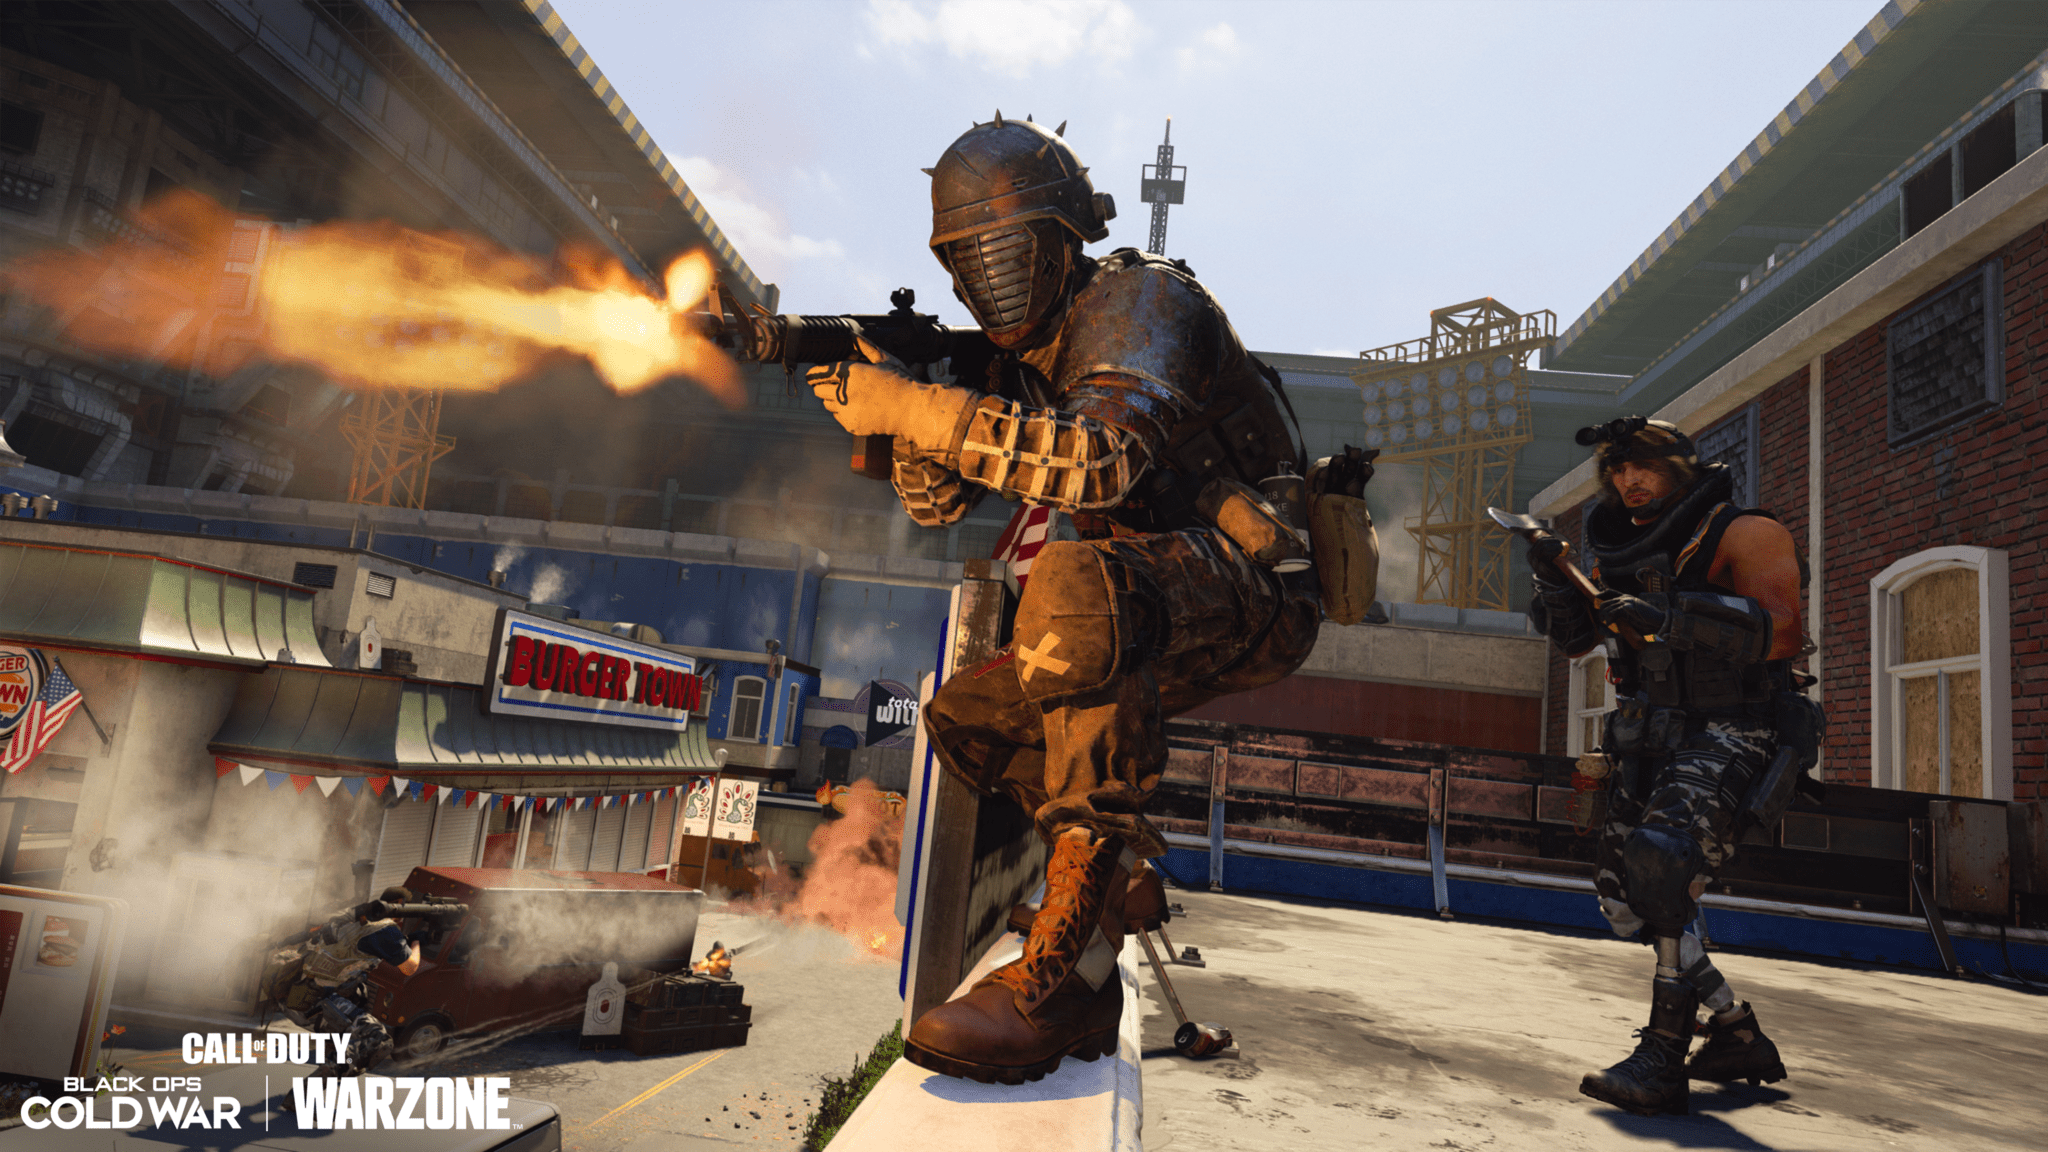 Black Ops Cold War Update 1.23 Pre-Load for Season 6 Live, Here's What's New